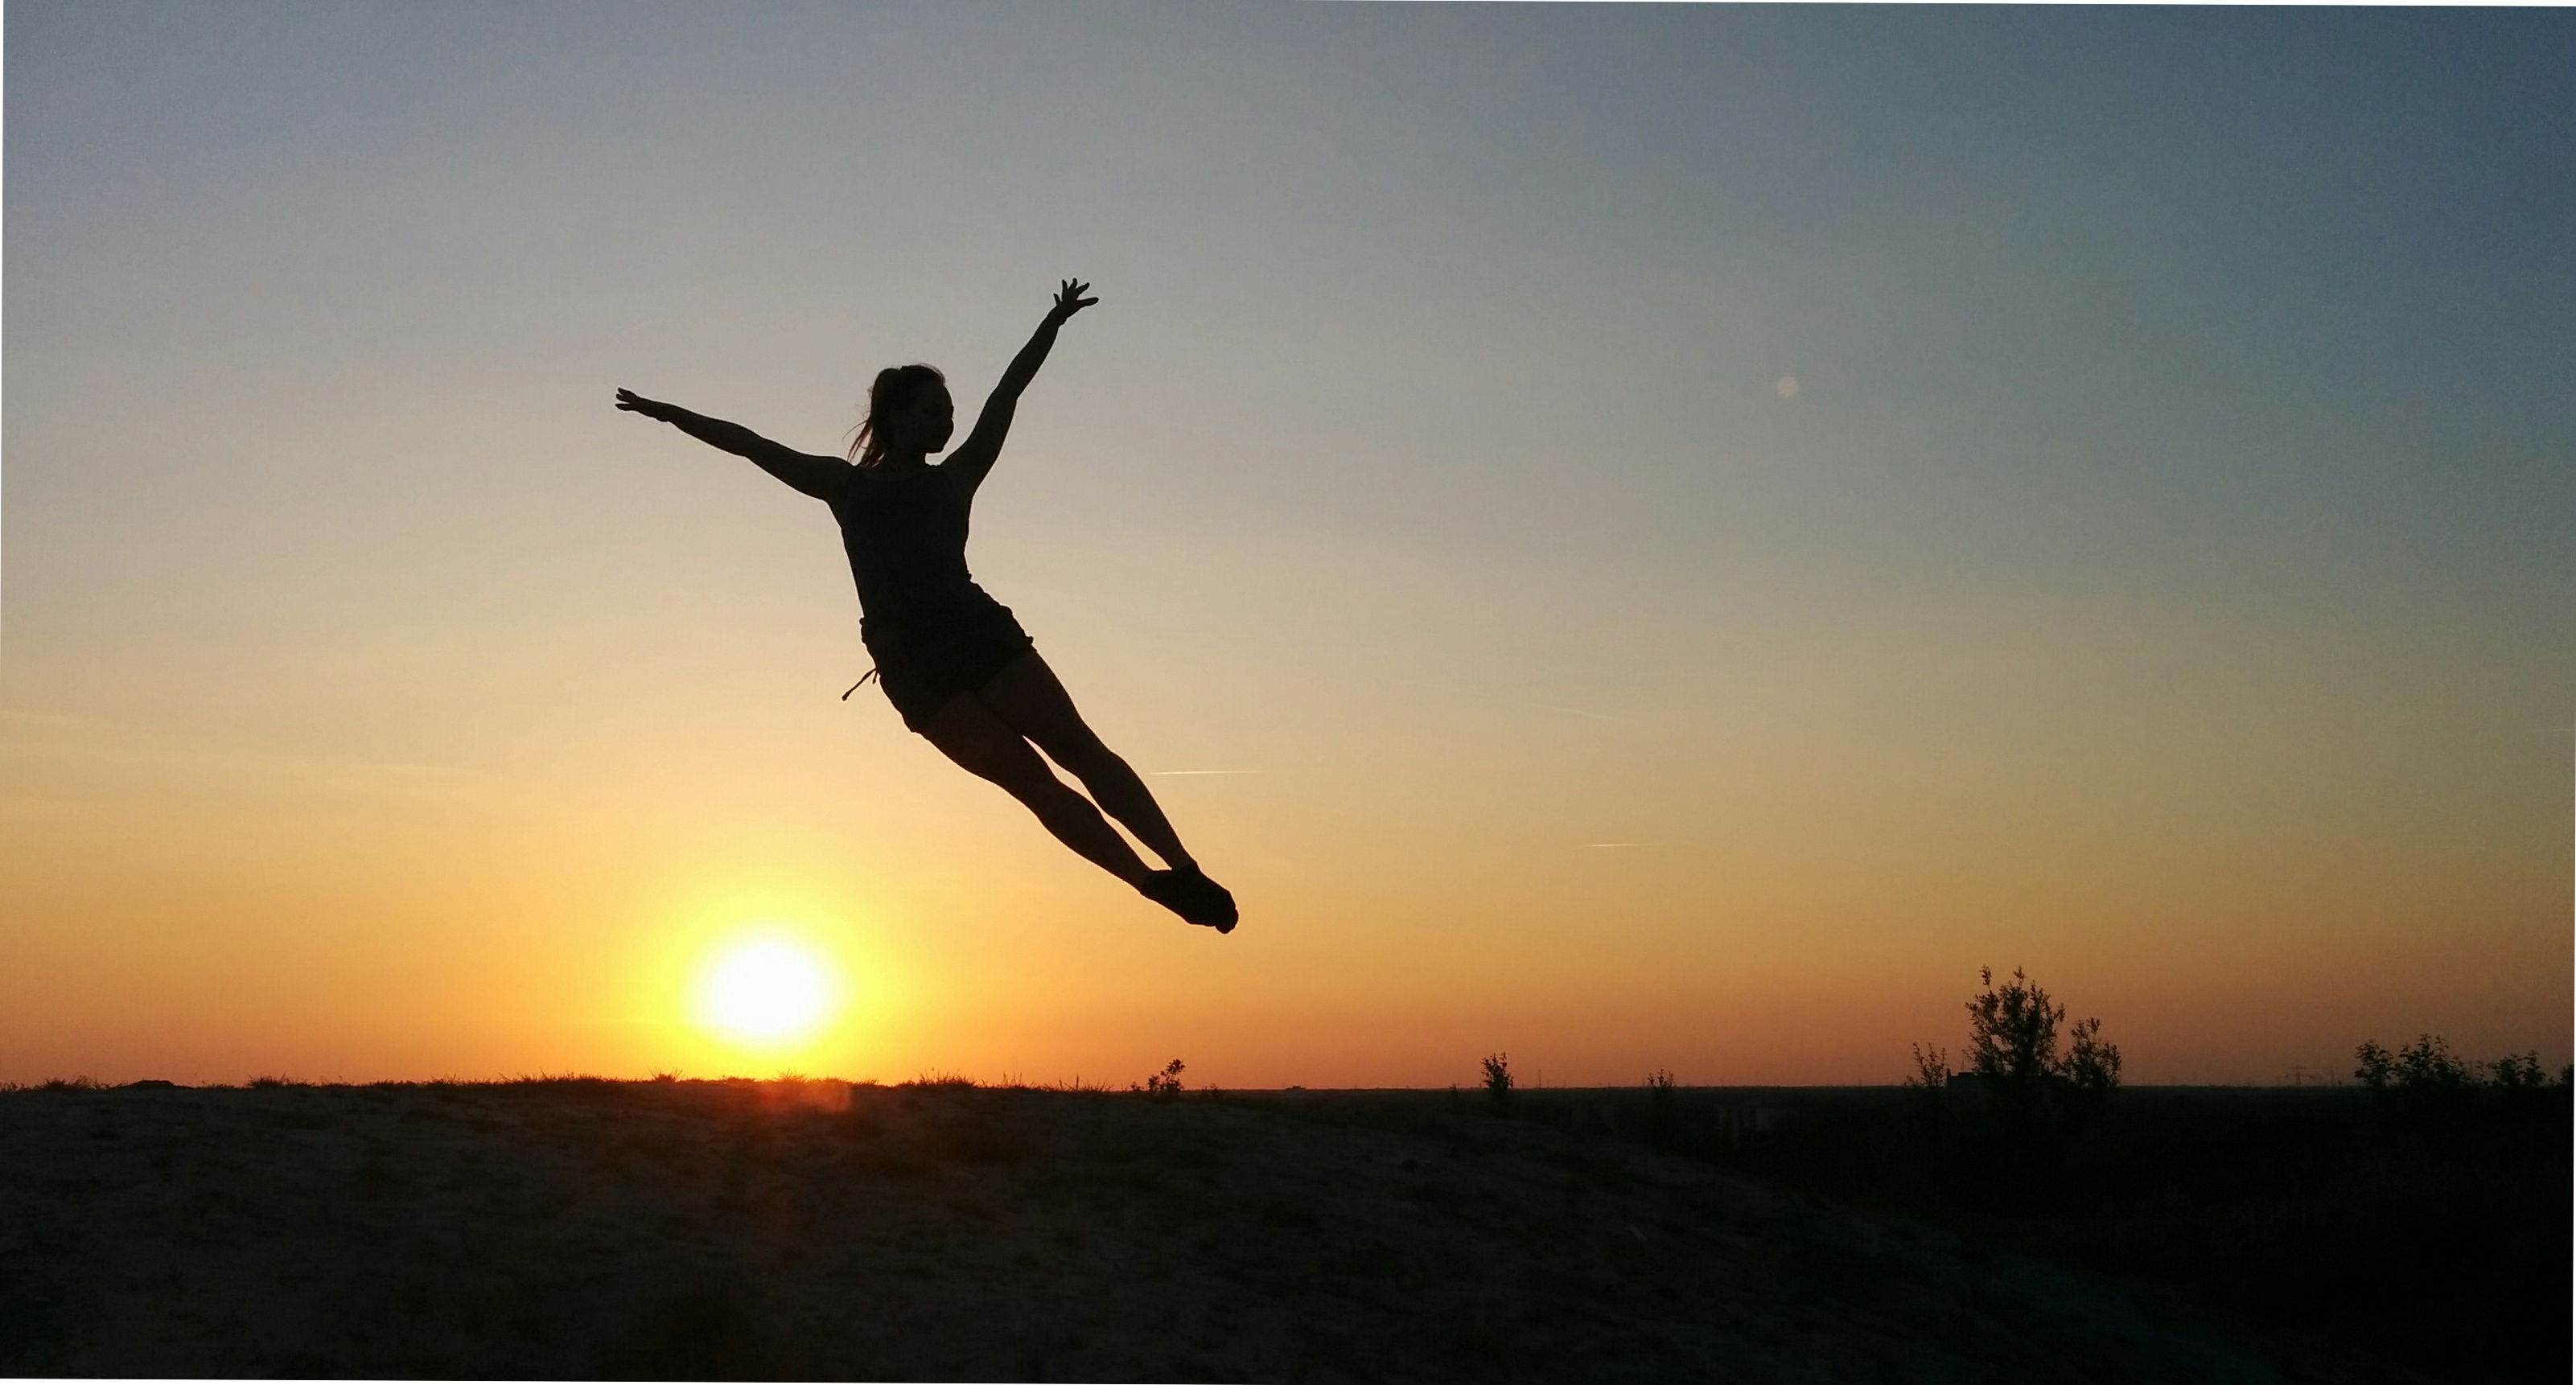 Dancing in the sunset.